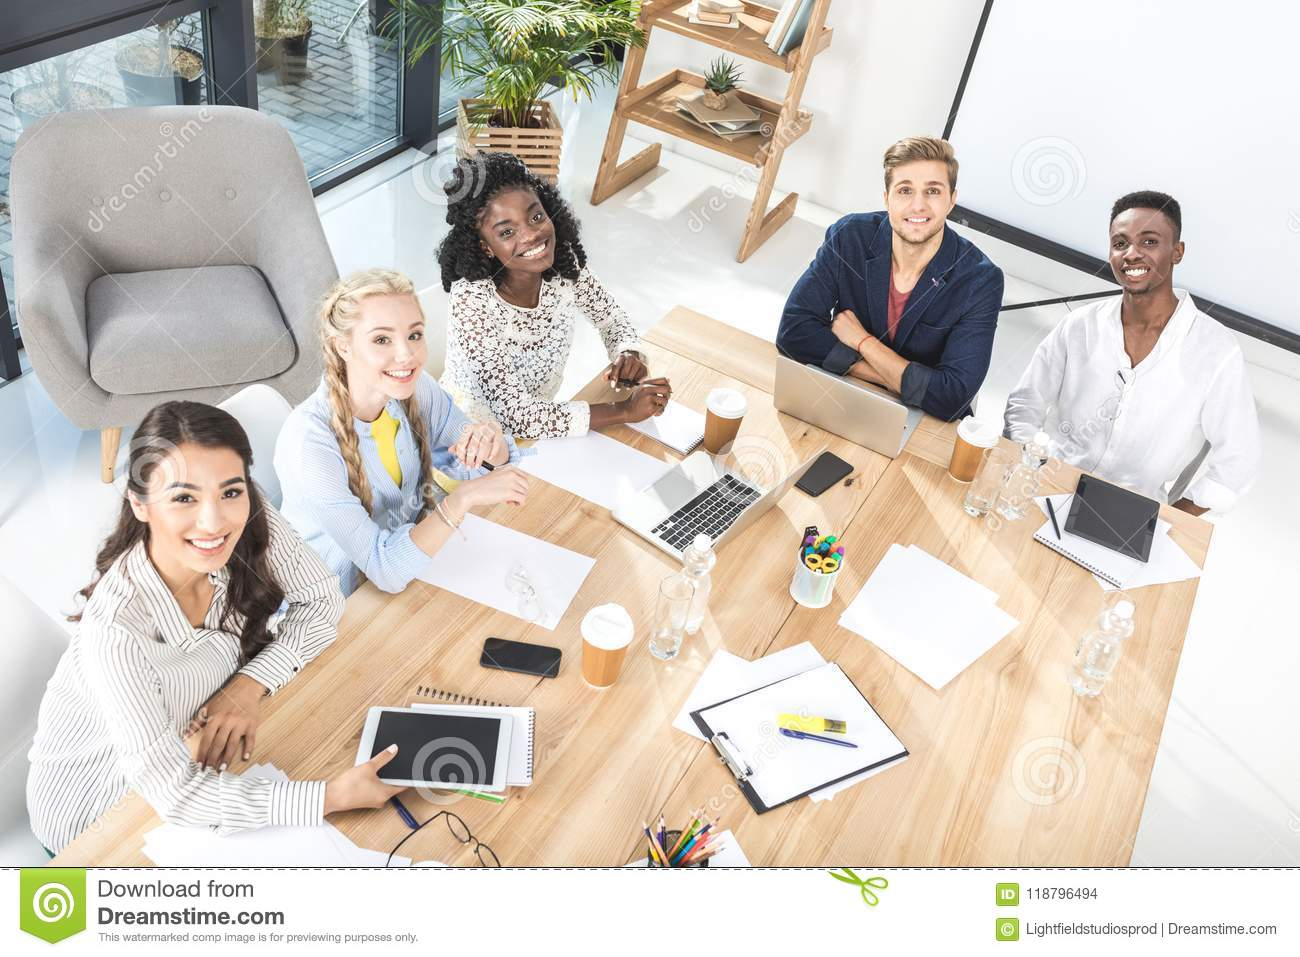 high angle view of multicultural group of business people looking at camera while sitting at table